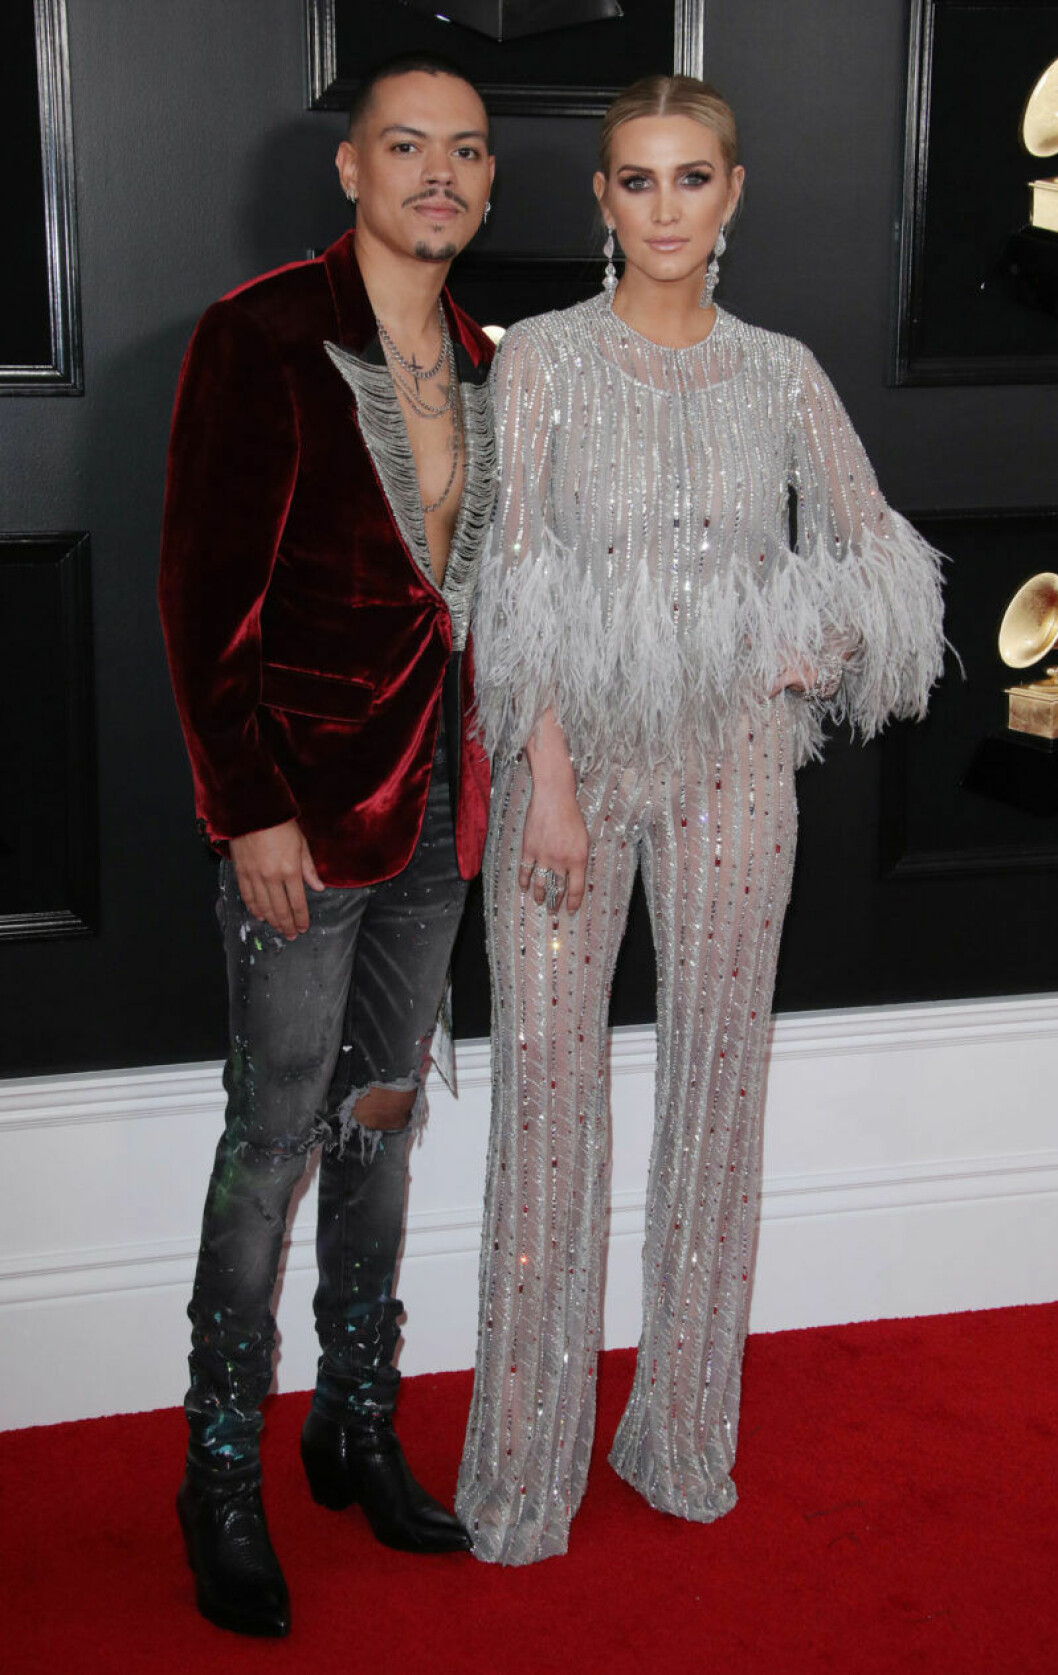 Evan Ross och Ashlee Simpson på Grammy Awards 2019